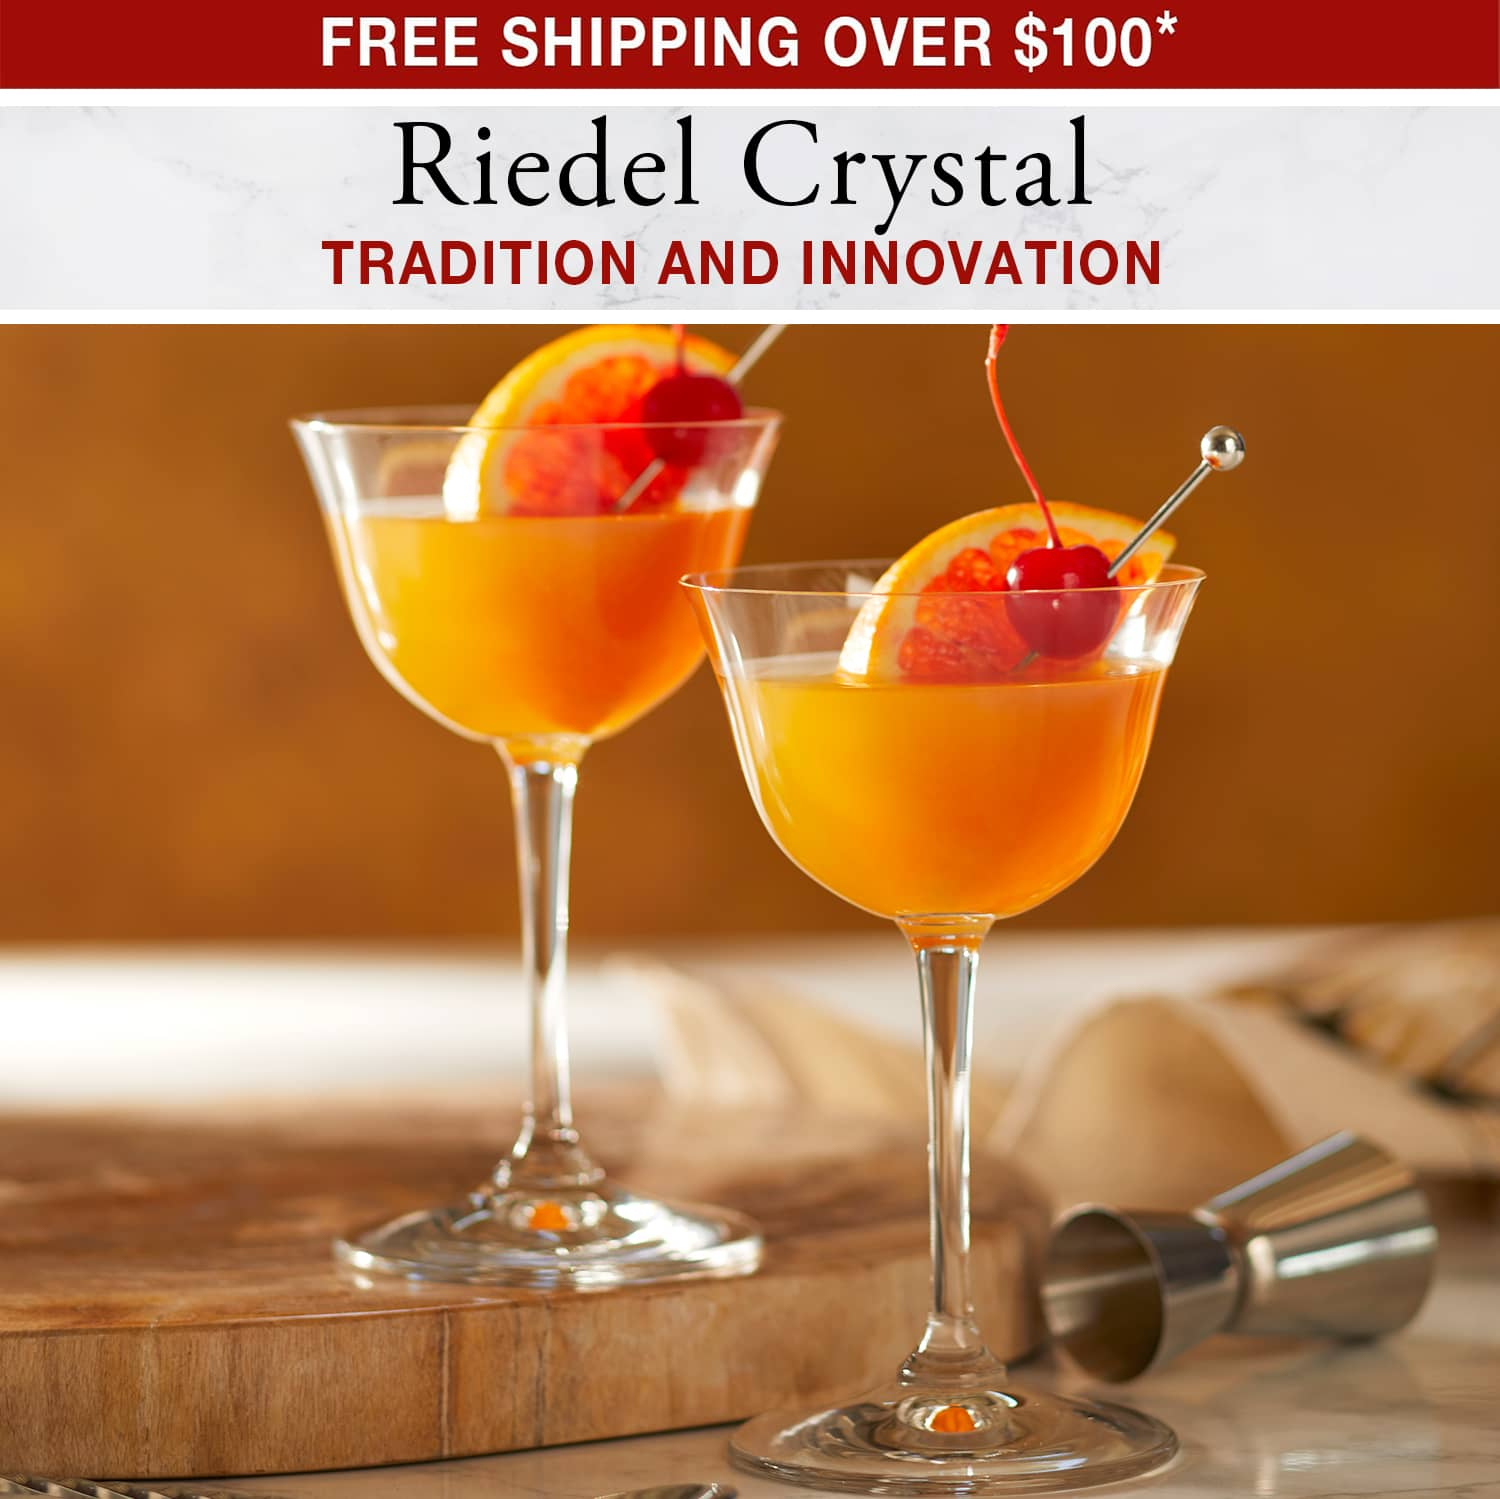 Riedel Crystal Tradition and Innovation - Free Shipping Over $100*